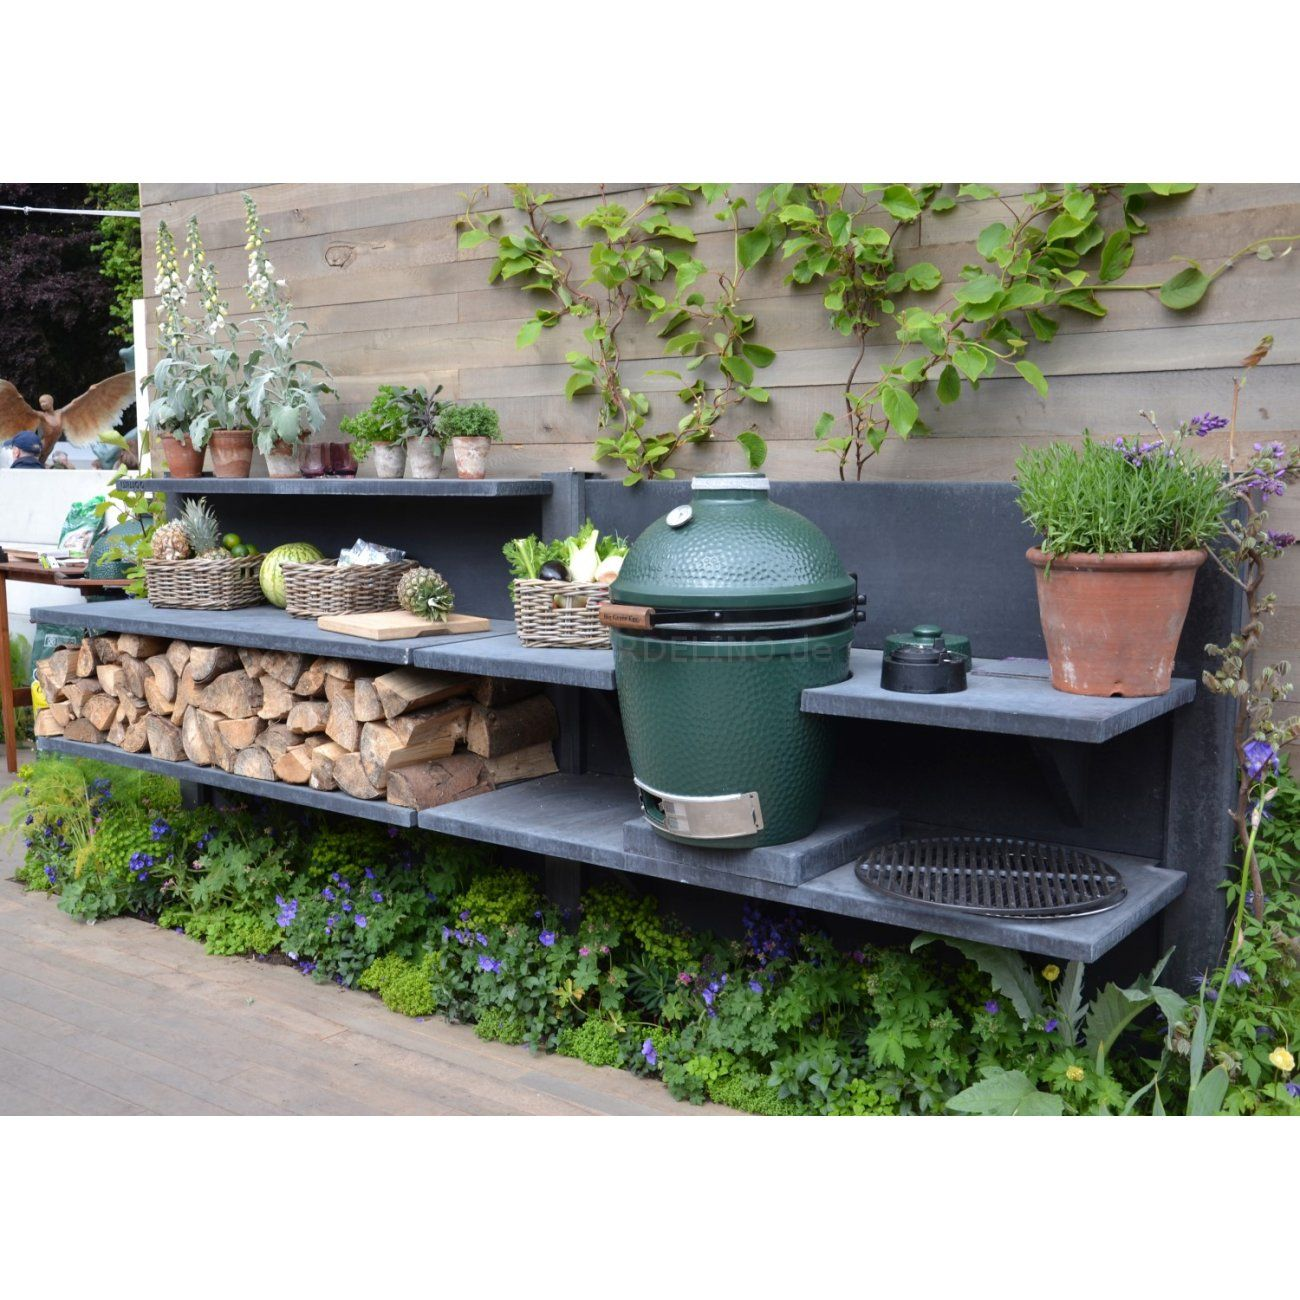 Backyard Kitchen Garden: Modulare Beton Outdoor Küche